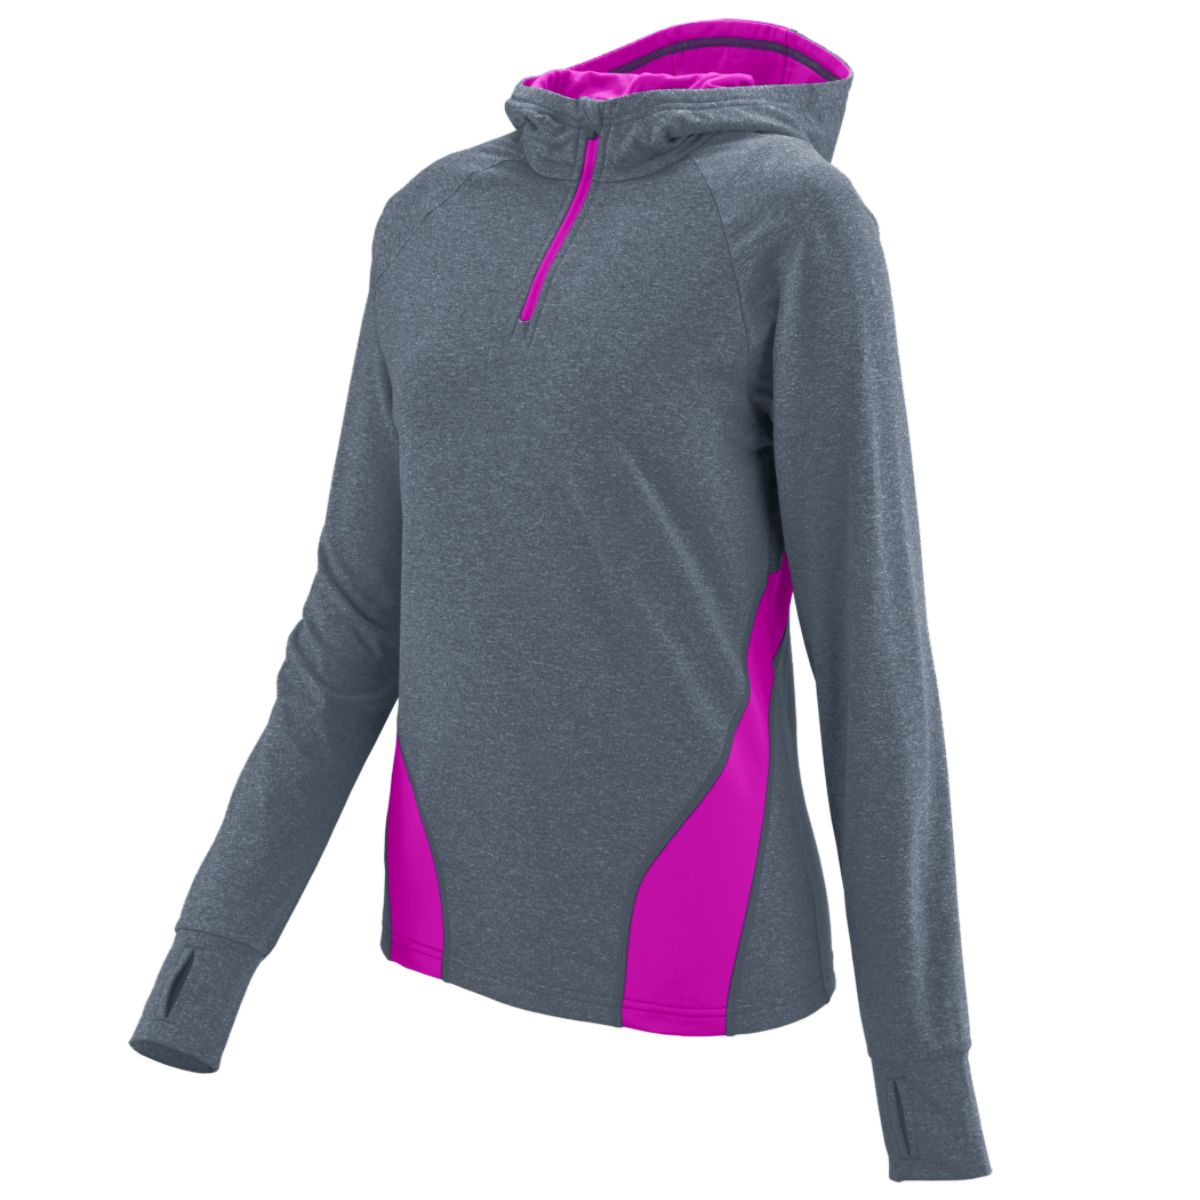 Augusta Ladies Freedom Pullover Gthth/Pp Xs - image 1 de 1